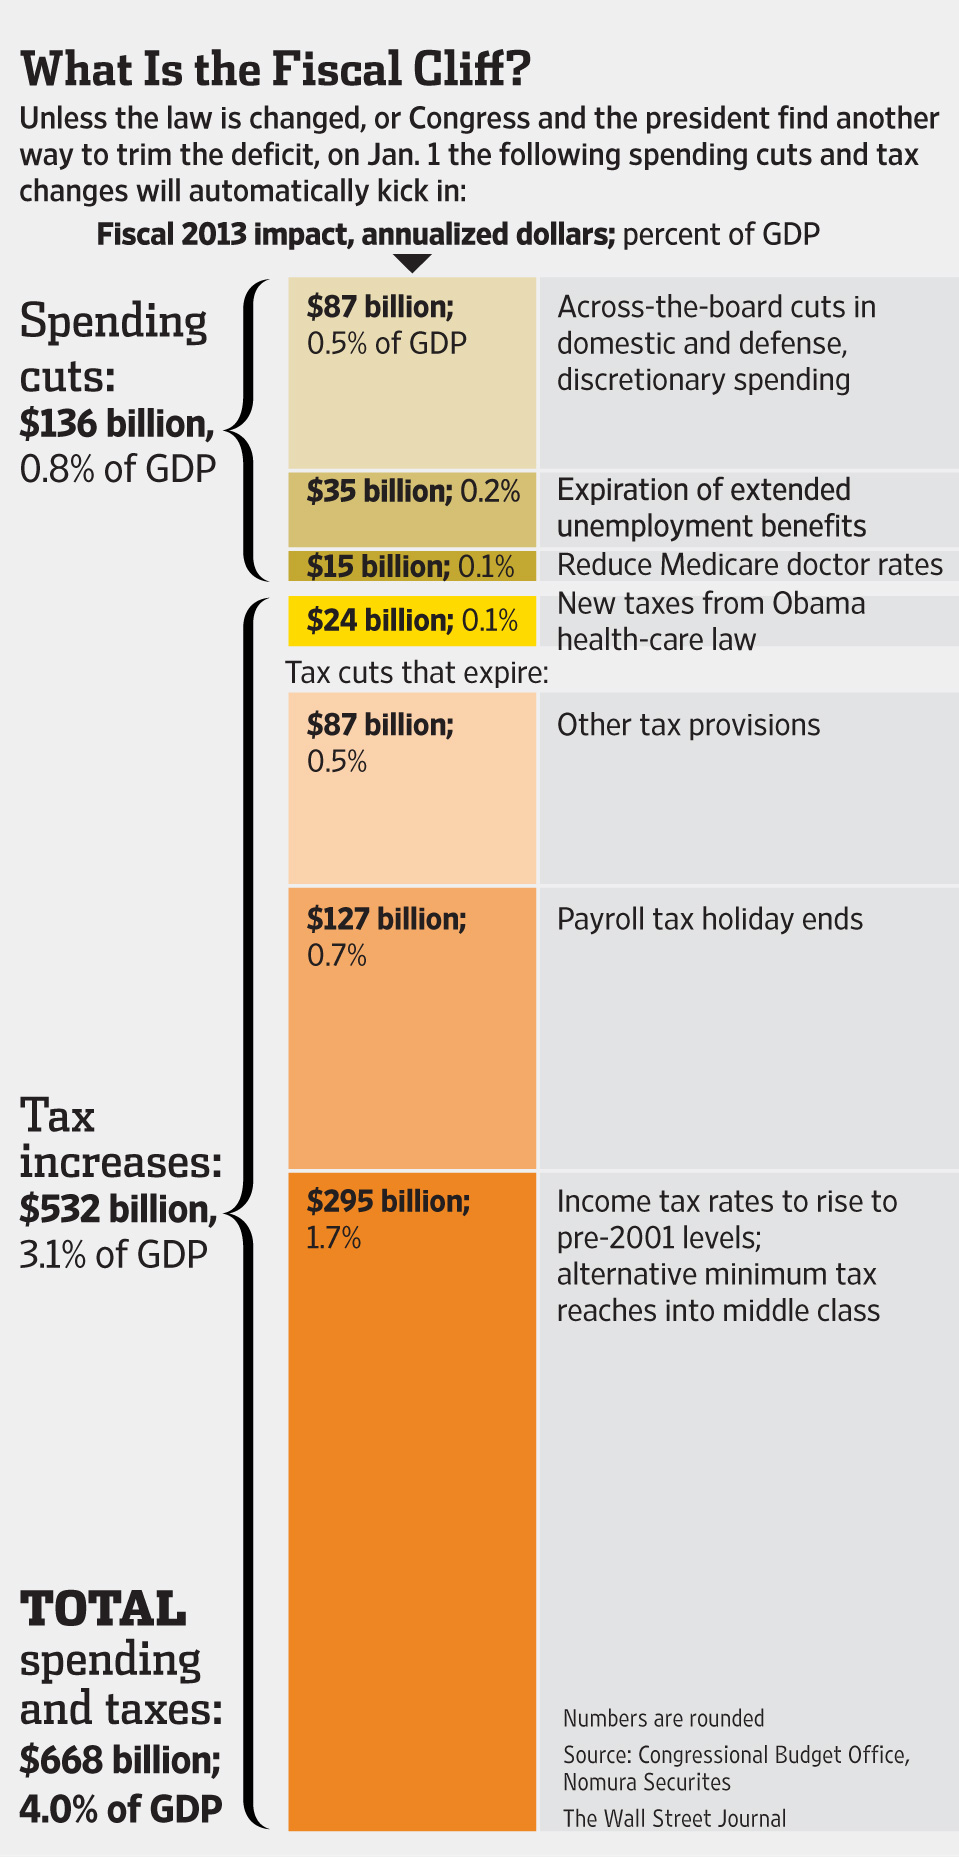 http://thinkmarkets.files.wordpress.com/2012/11/fiscal-cliff1.jpg